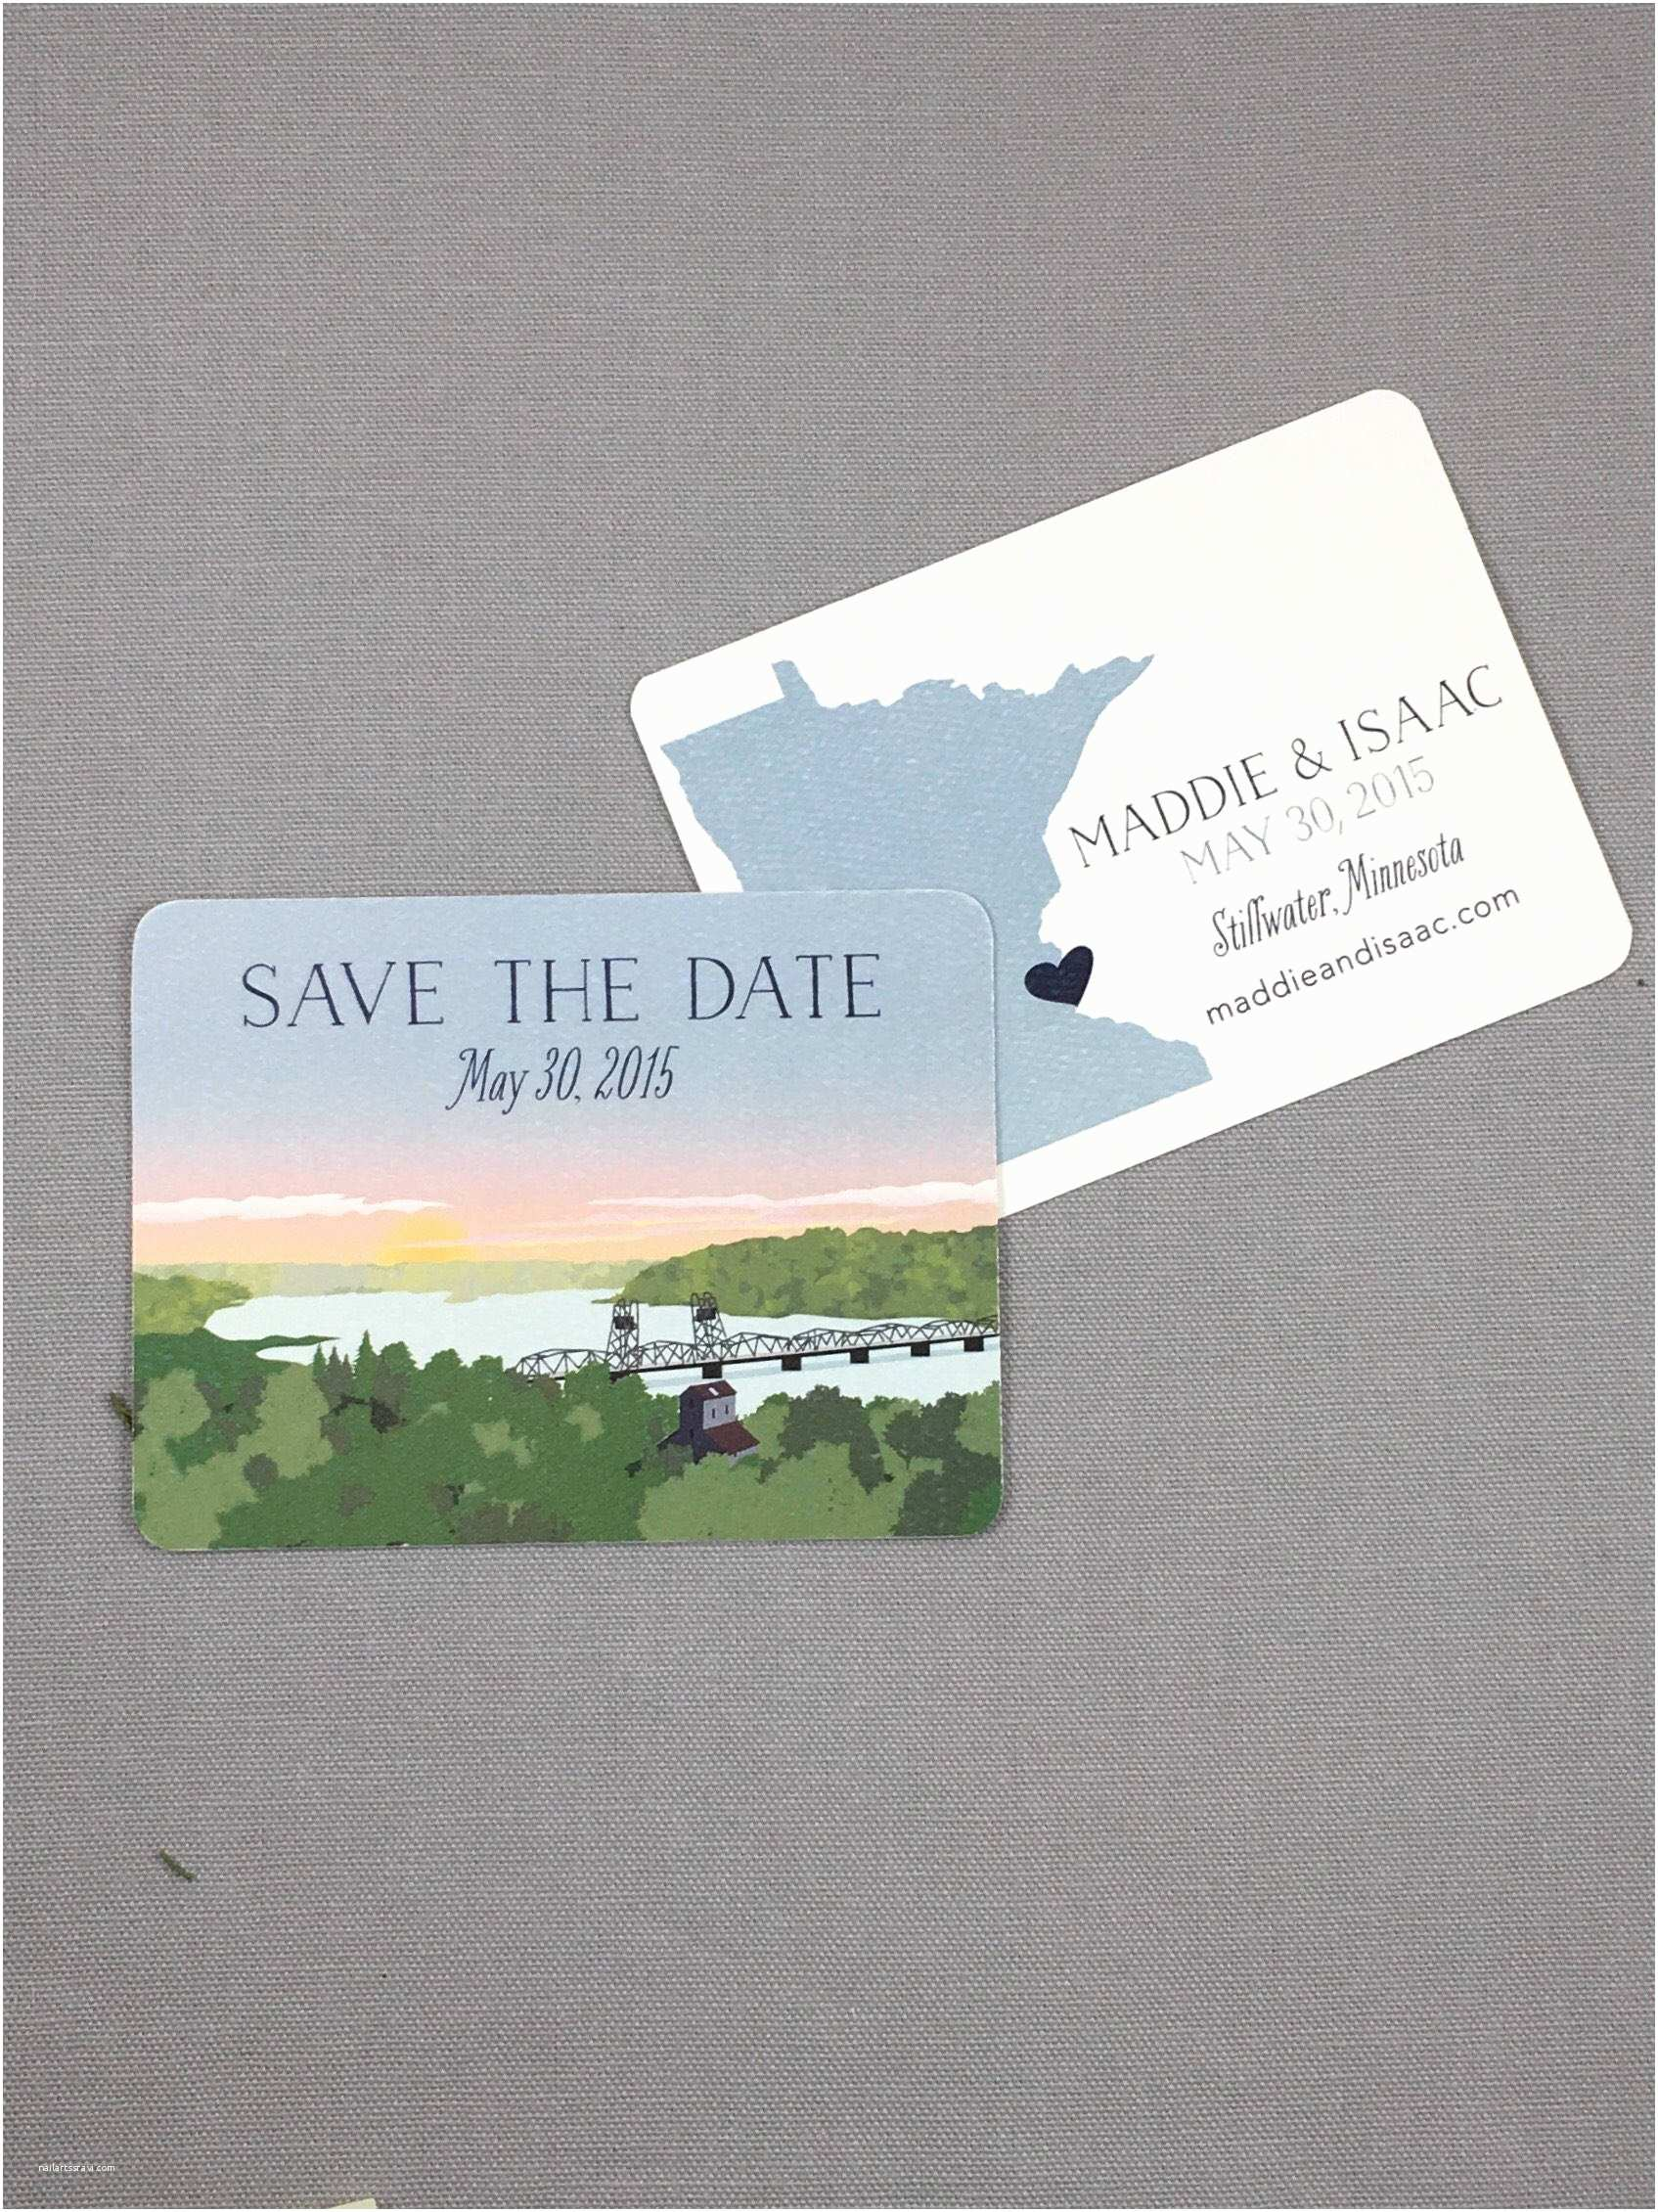 Wedding Invitations Stillwater Mn Stillwater Minnesota Wedding Save the Date Notecards with